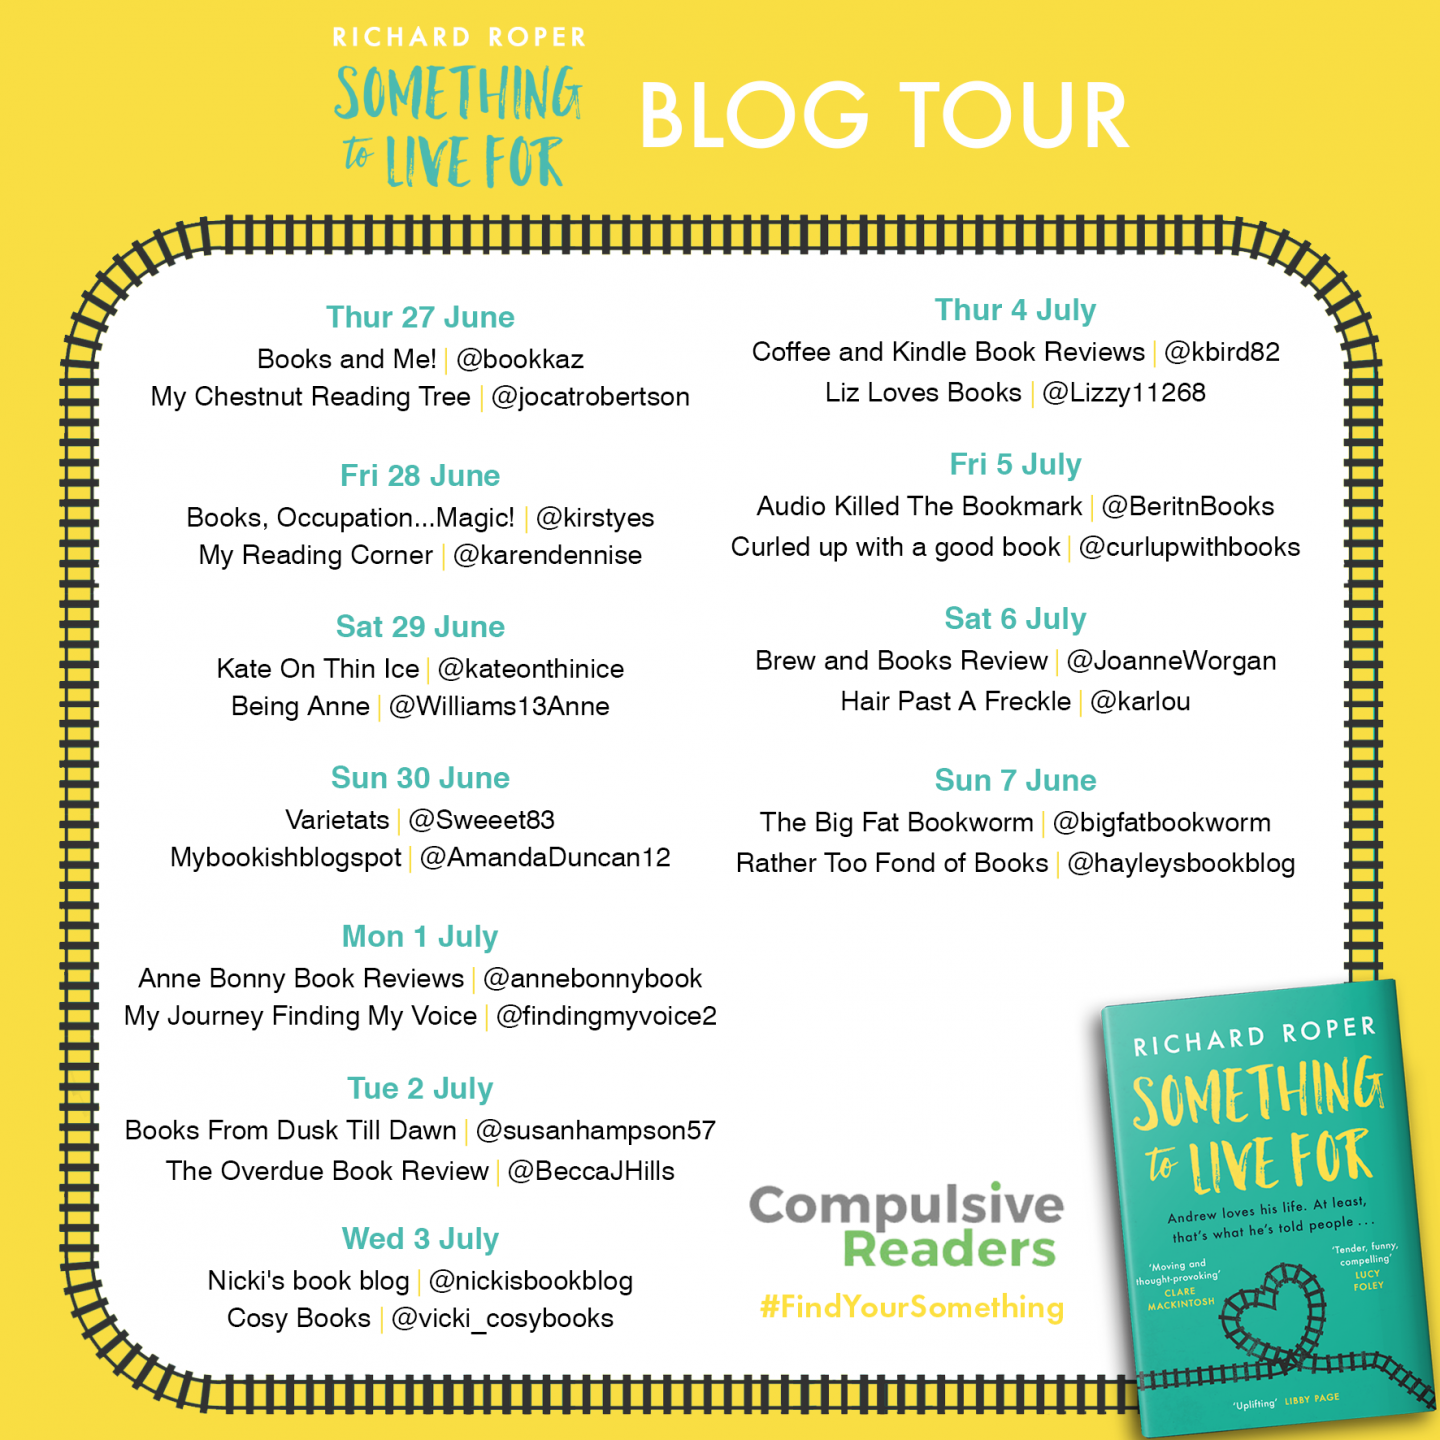 Something-to-Live-For-blog-tour-2